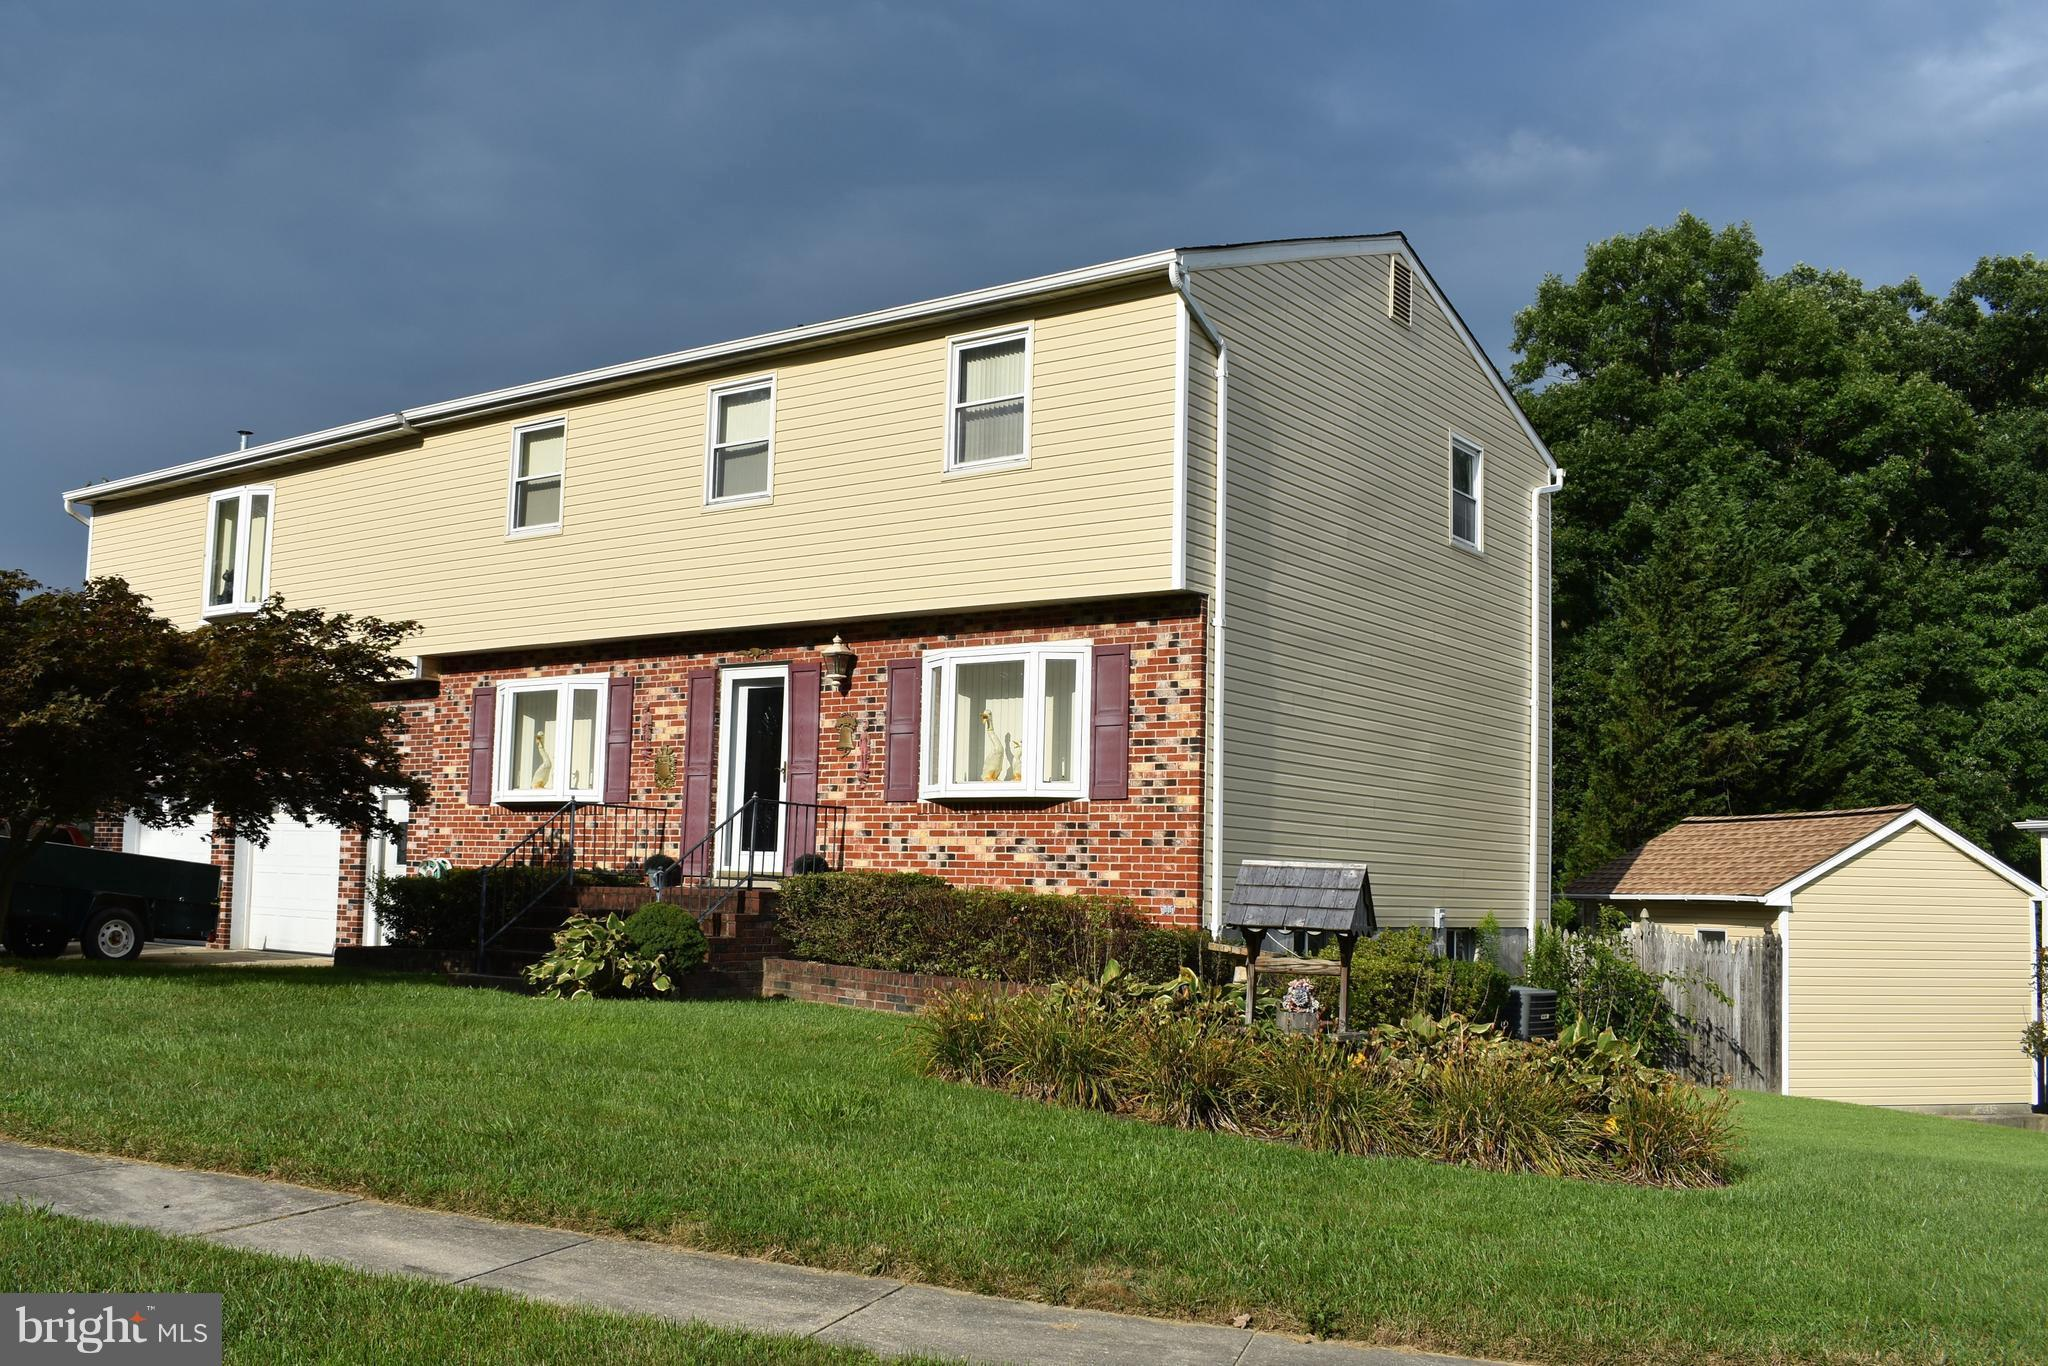 8601 HICKORY THICKET PLACE, BALTIMORE, MD 21236